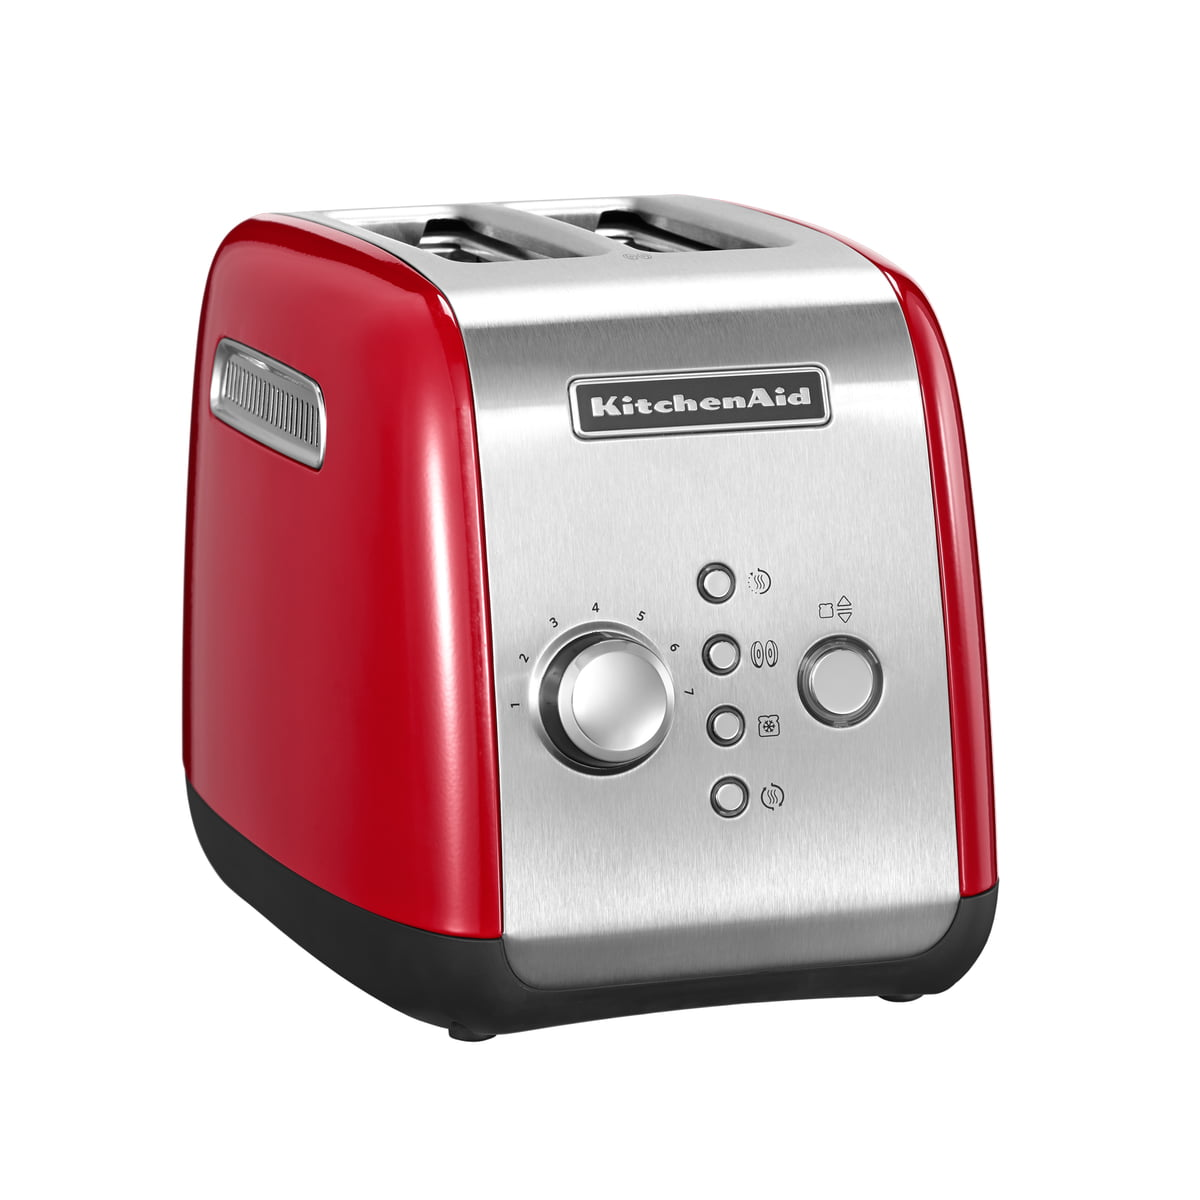 Permalink to 36 awesome image of Kitchen Aid Toaster